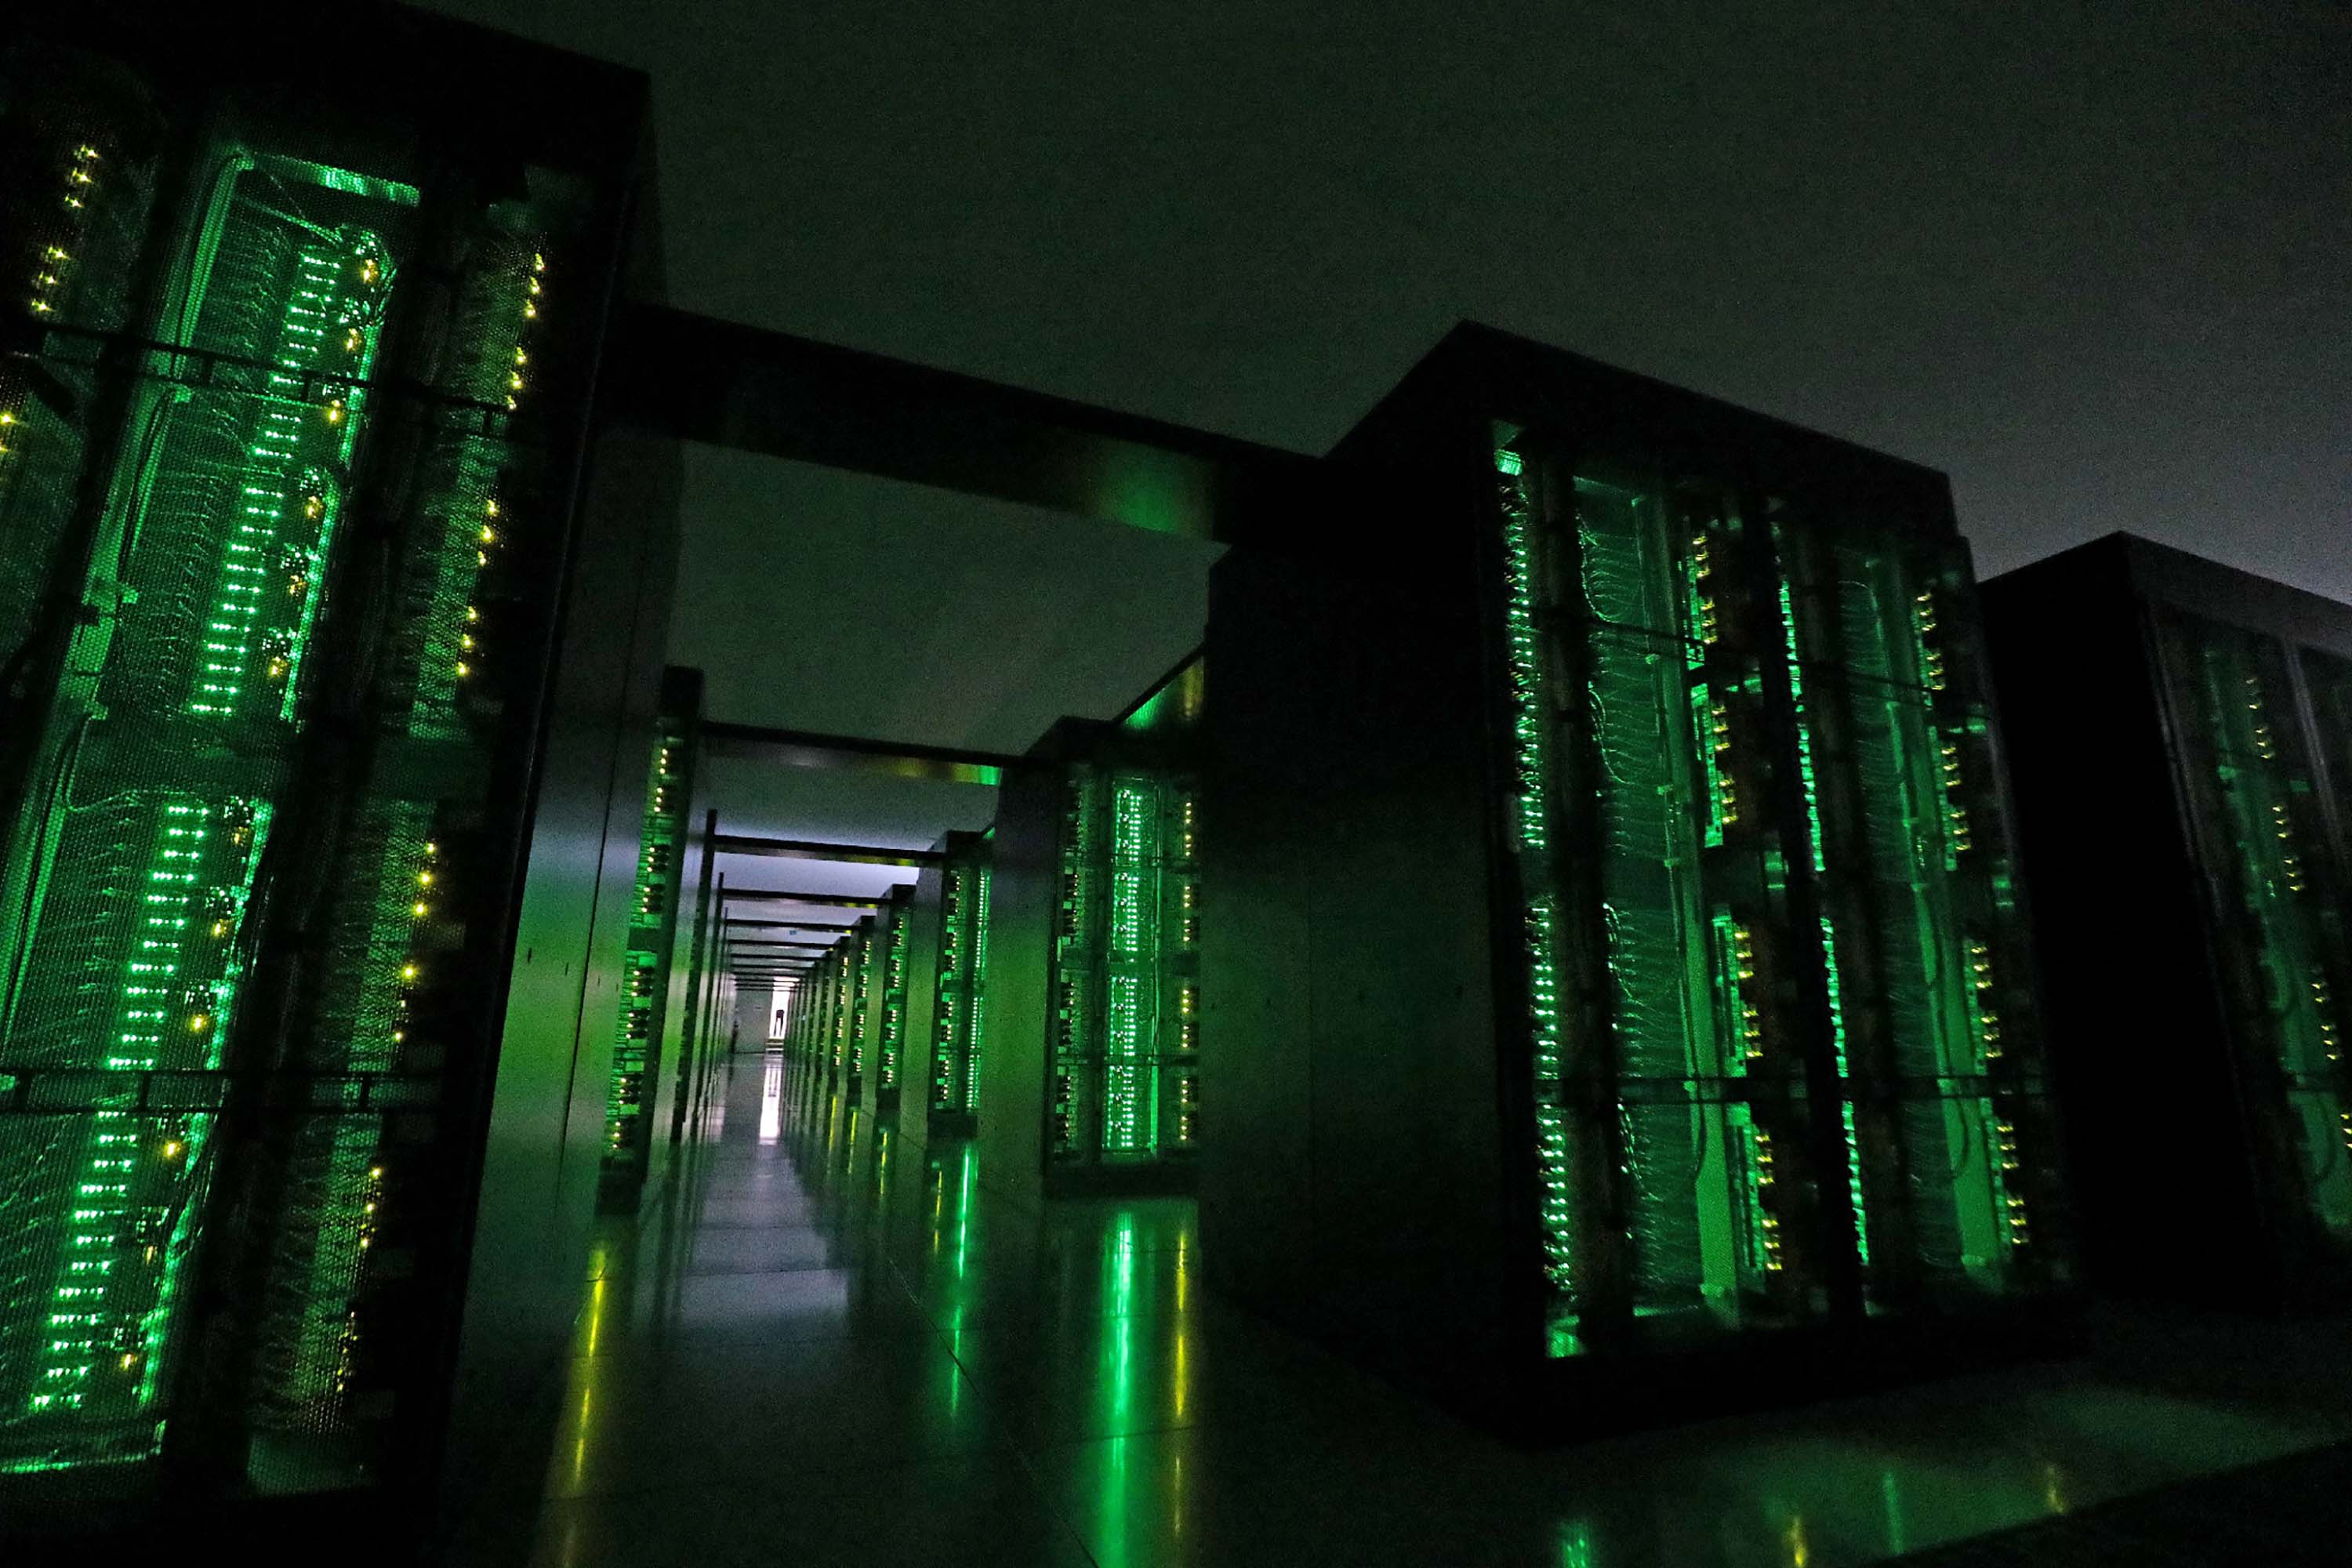 The Fugaku supercomputer is pictured at the Riken Center for Computational Science in Kobe, Japan, on June 16.